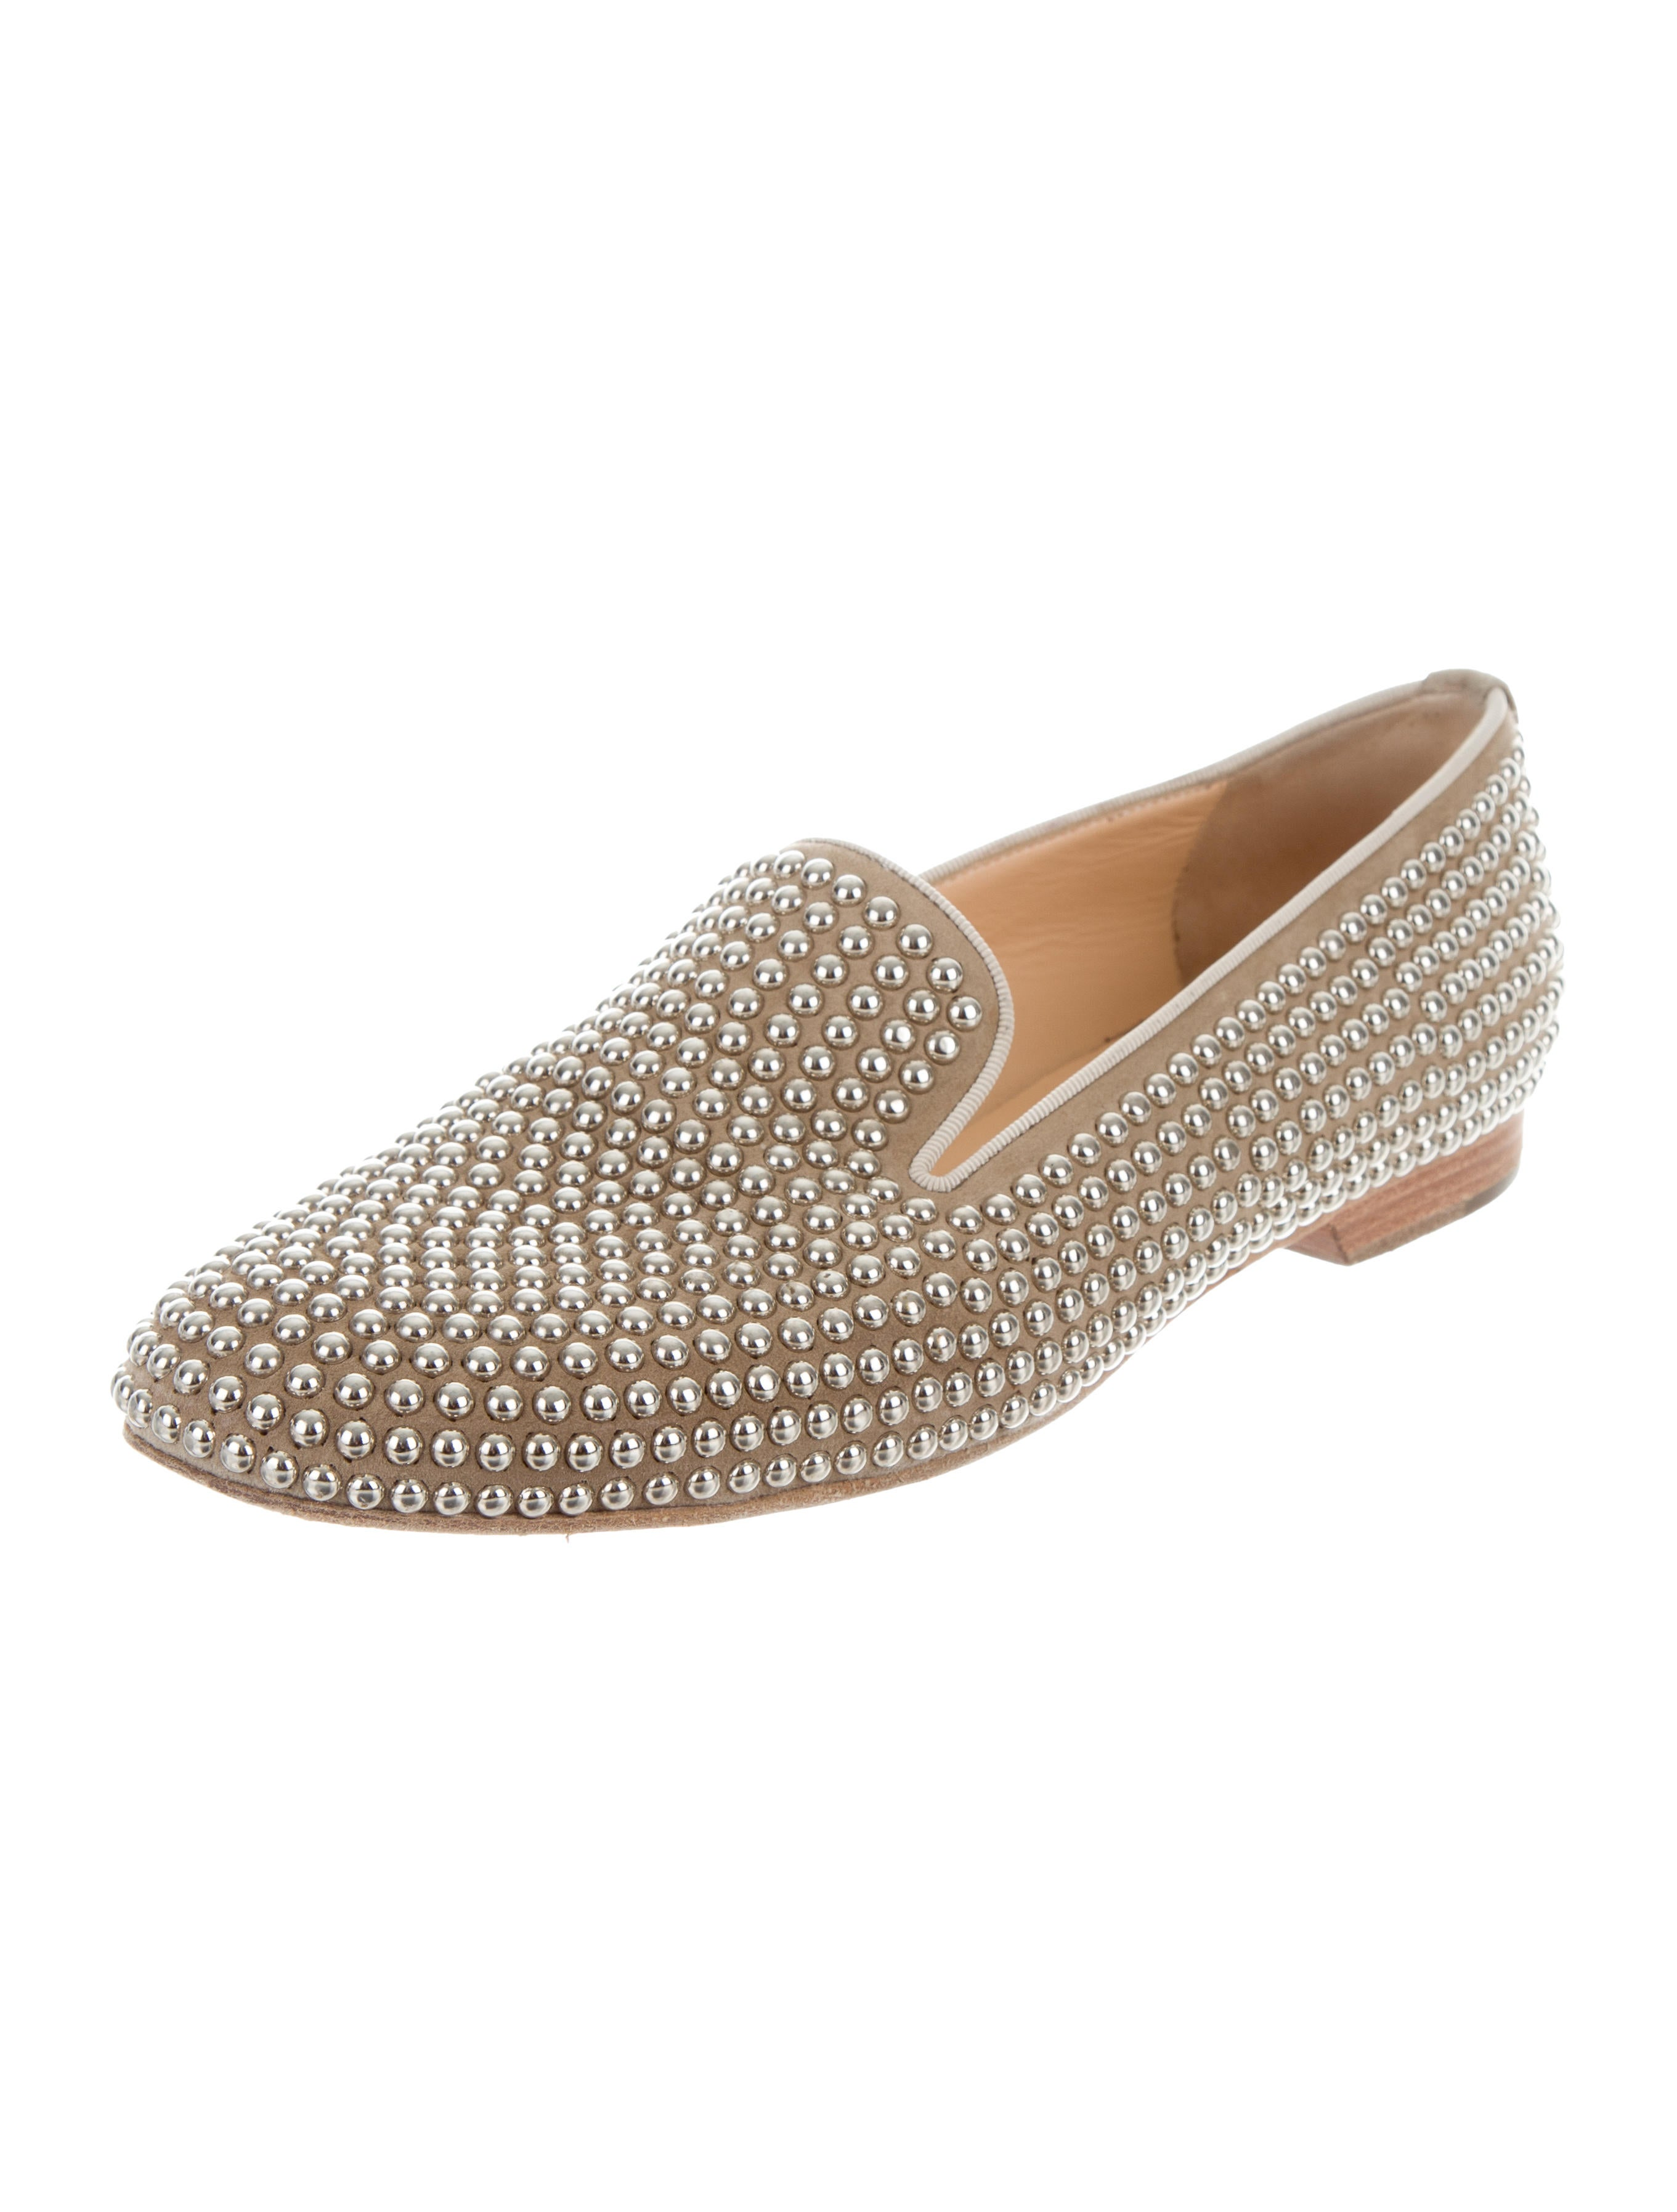 Christian Louboutin Shoes Studded Toes Flats